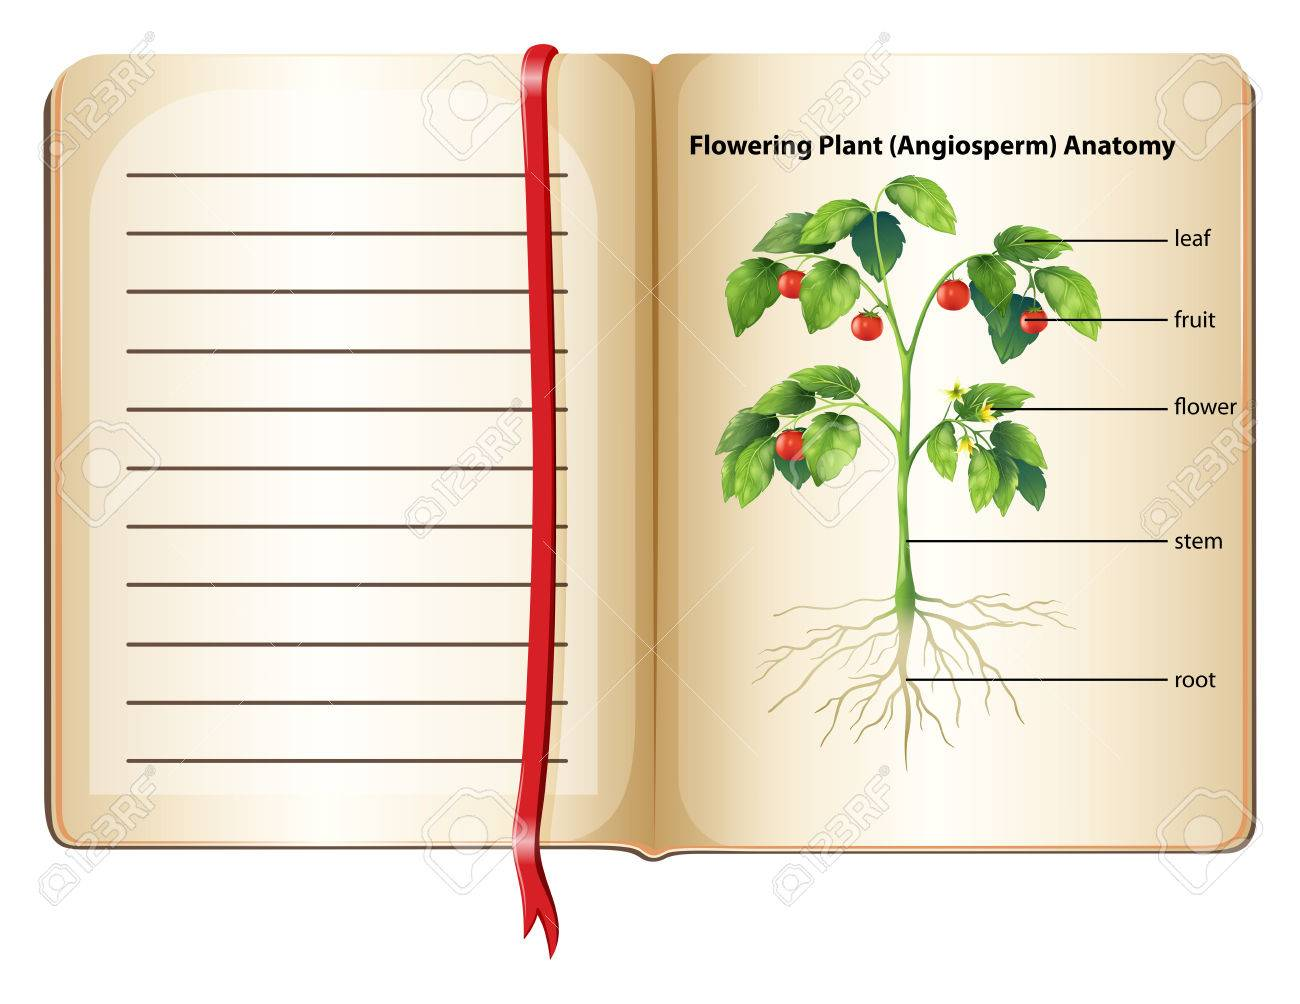 Flowering Plant Anatomy On Page Illustration Royalty Free Cliparts ...